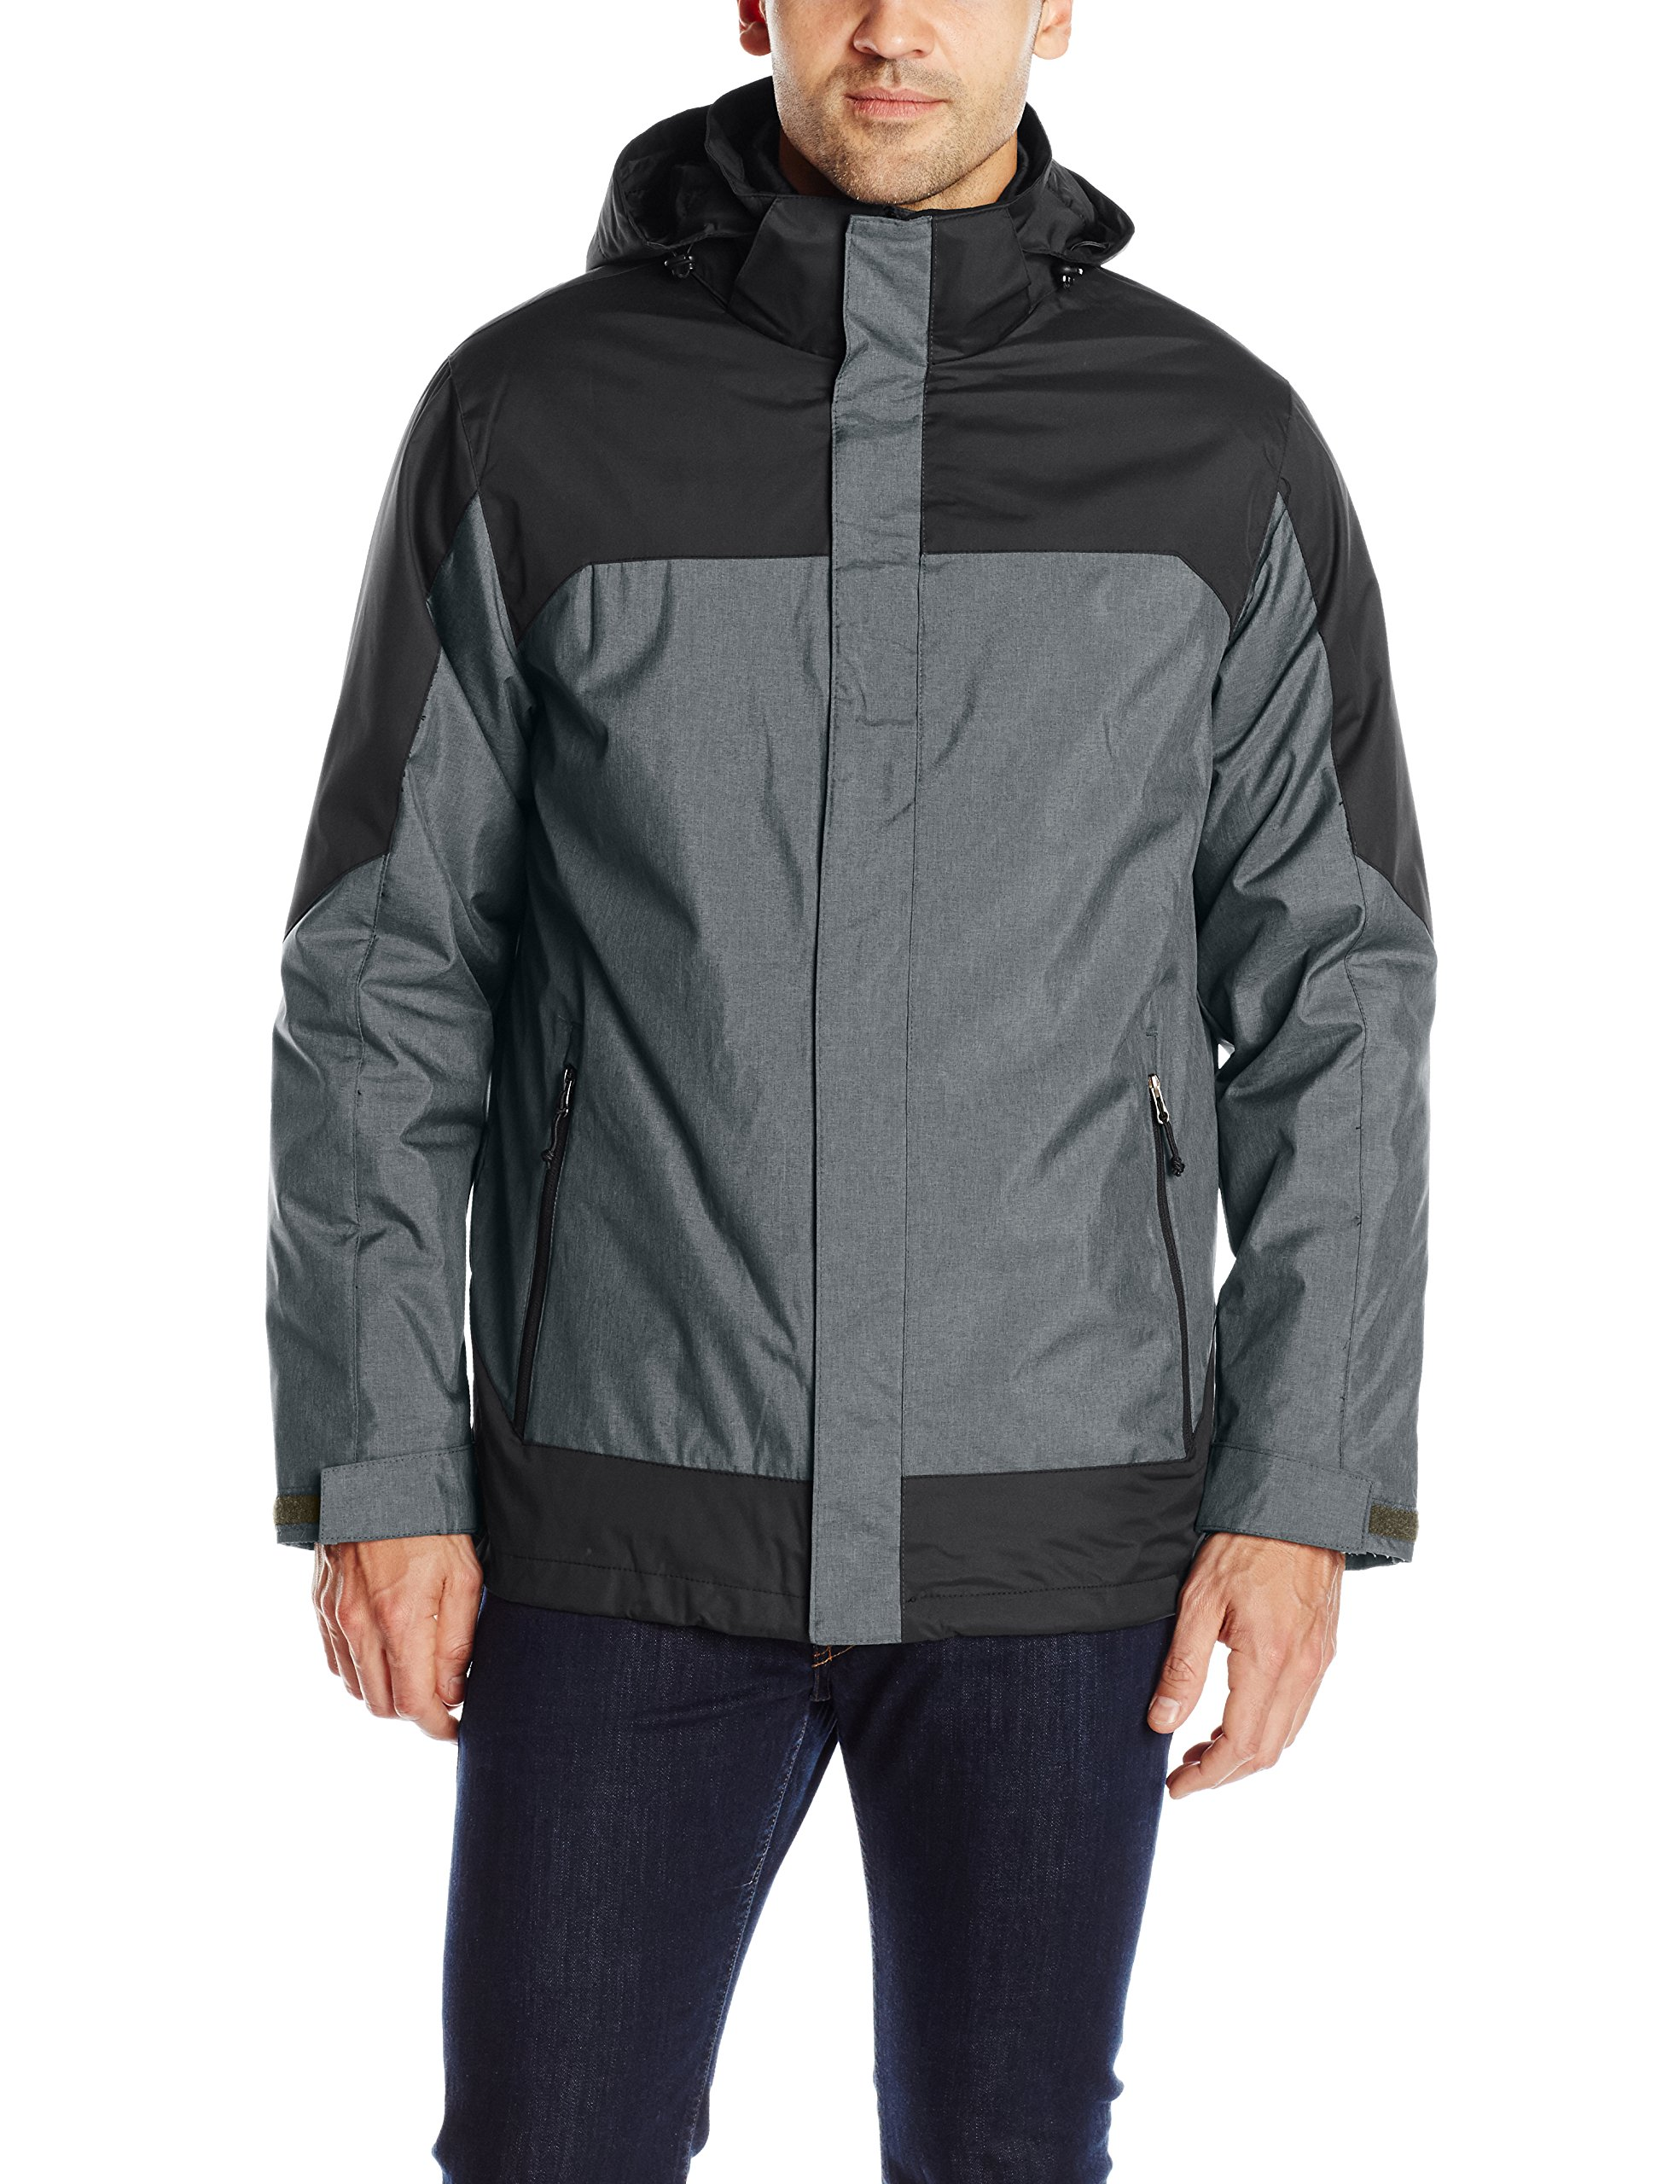 32Degrees Weatherproof Men's 3 in 1 Systems Jacket Colorblock, Charcoal Melange/Black, X-Large by 32 DEGREES